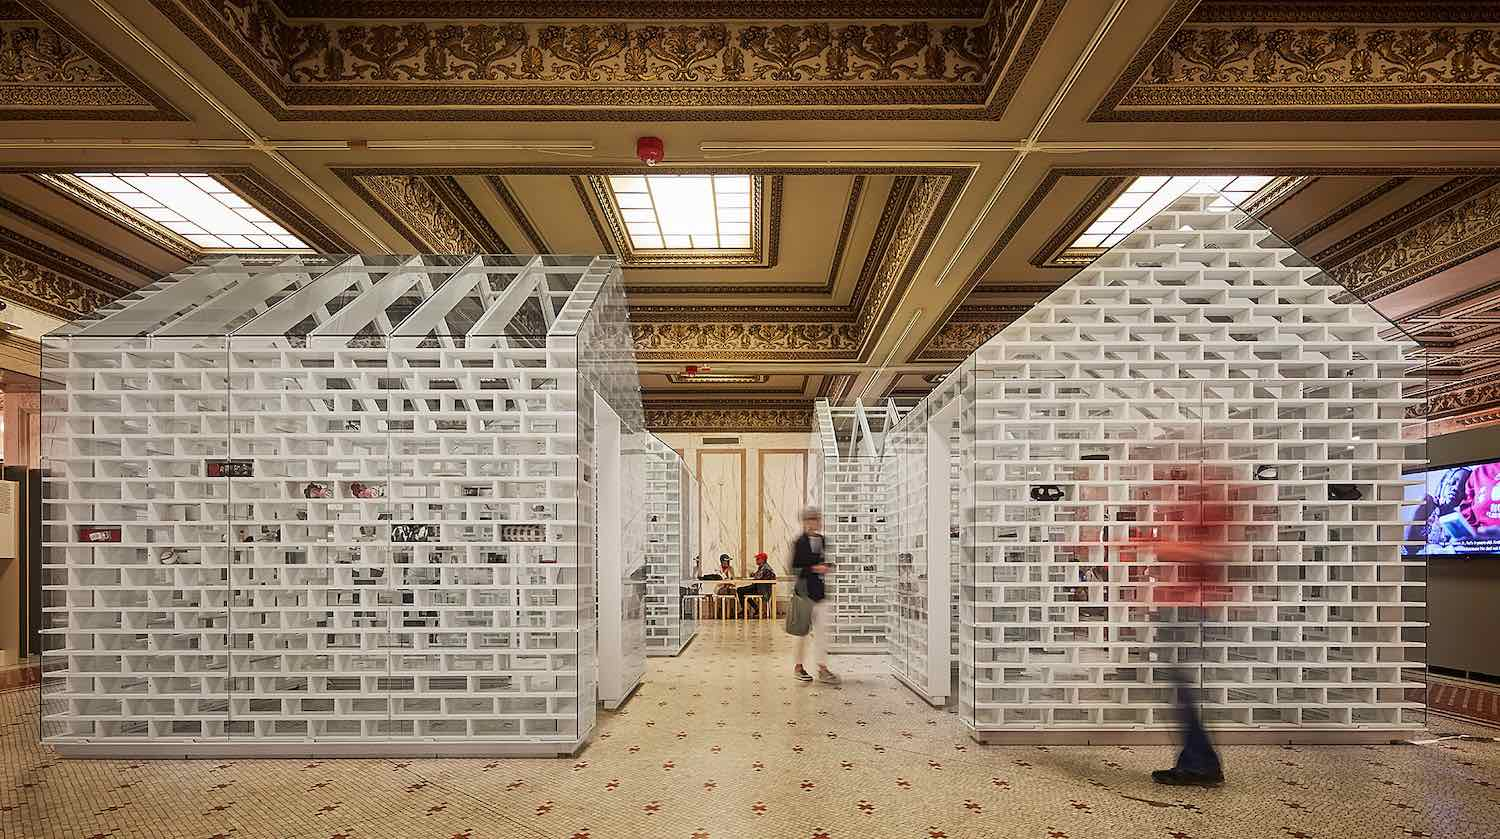 Chicago Architecture Biennial 2019 - Photo by Kendall McCaugherty, courtesy of Chicago Architecture Biennial.